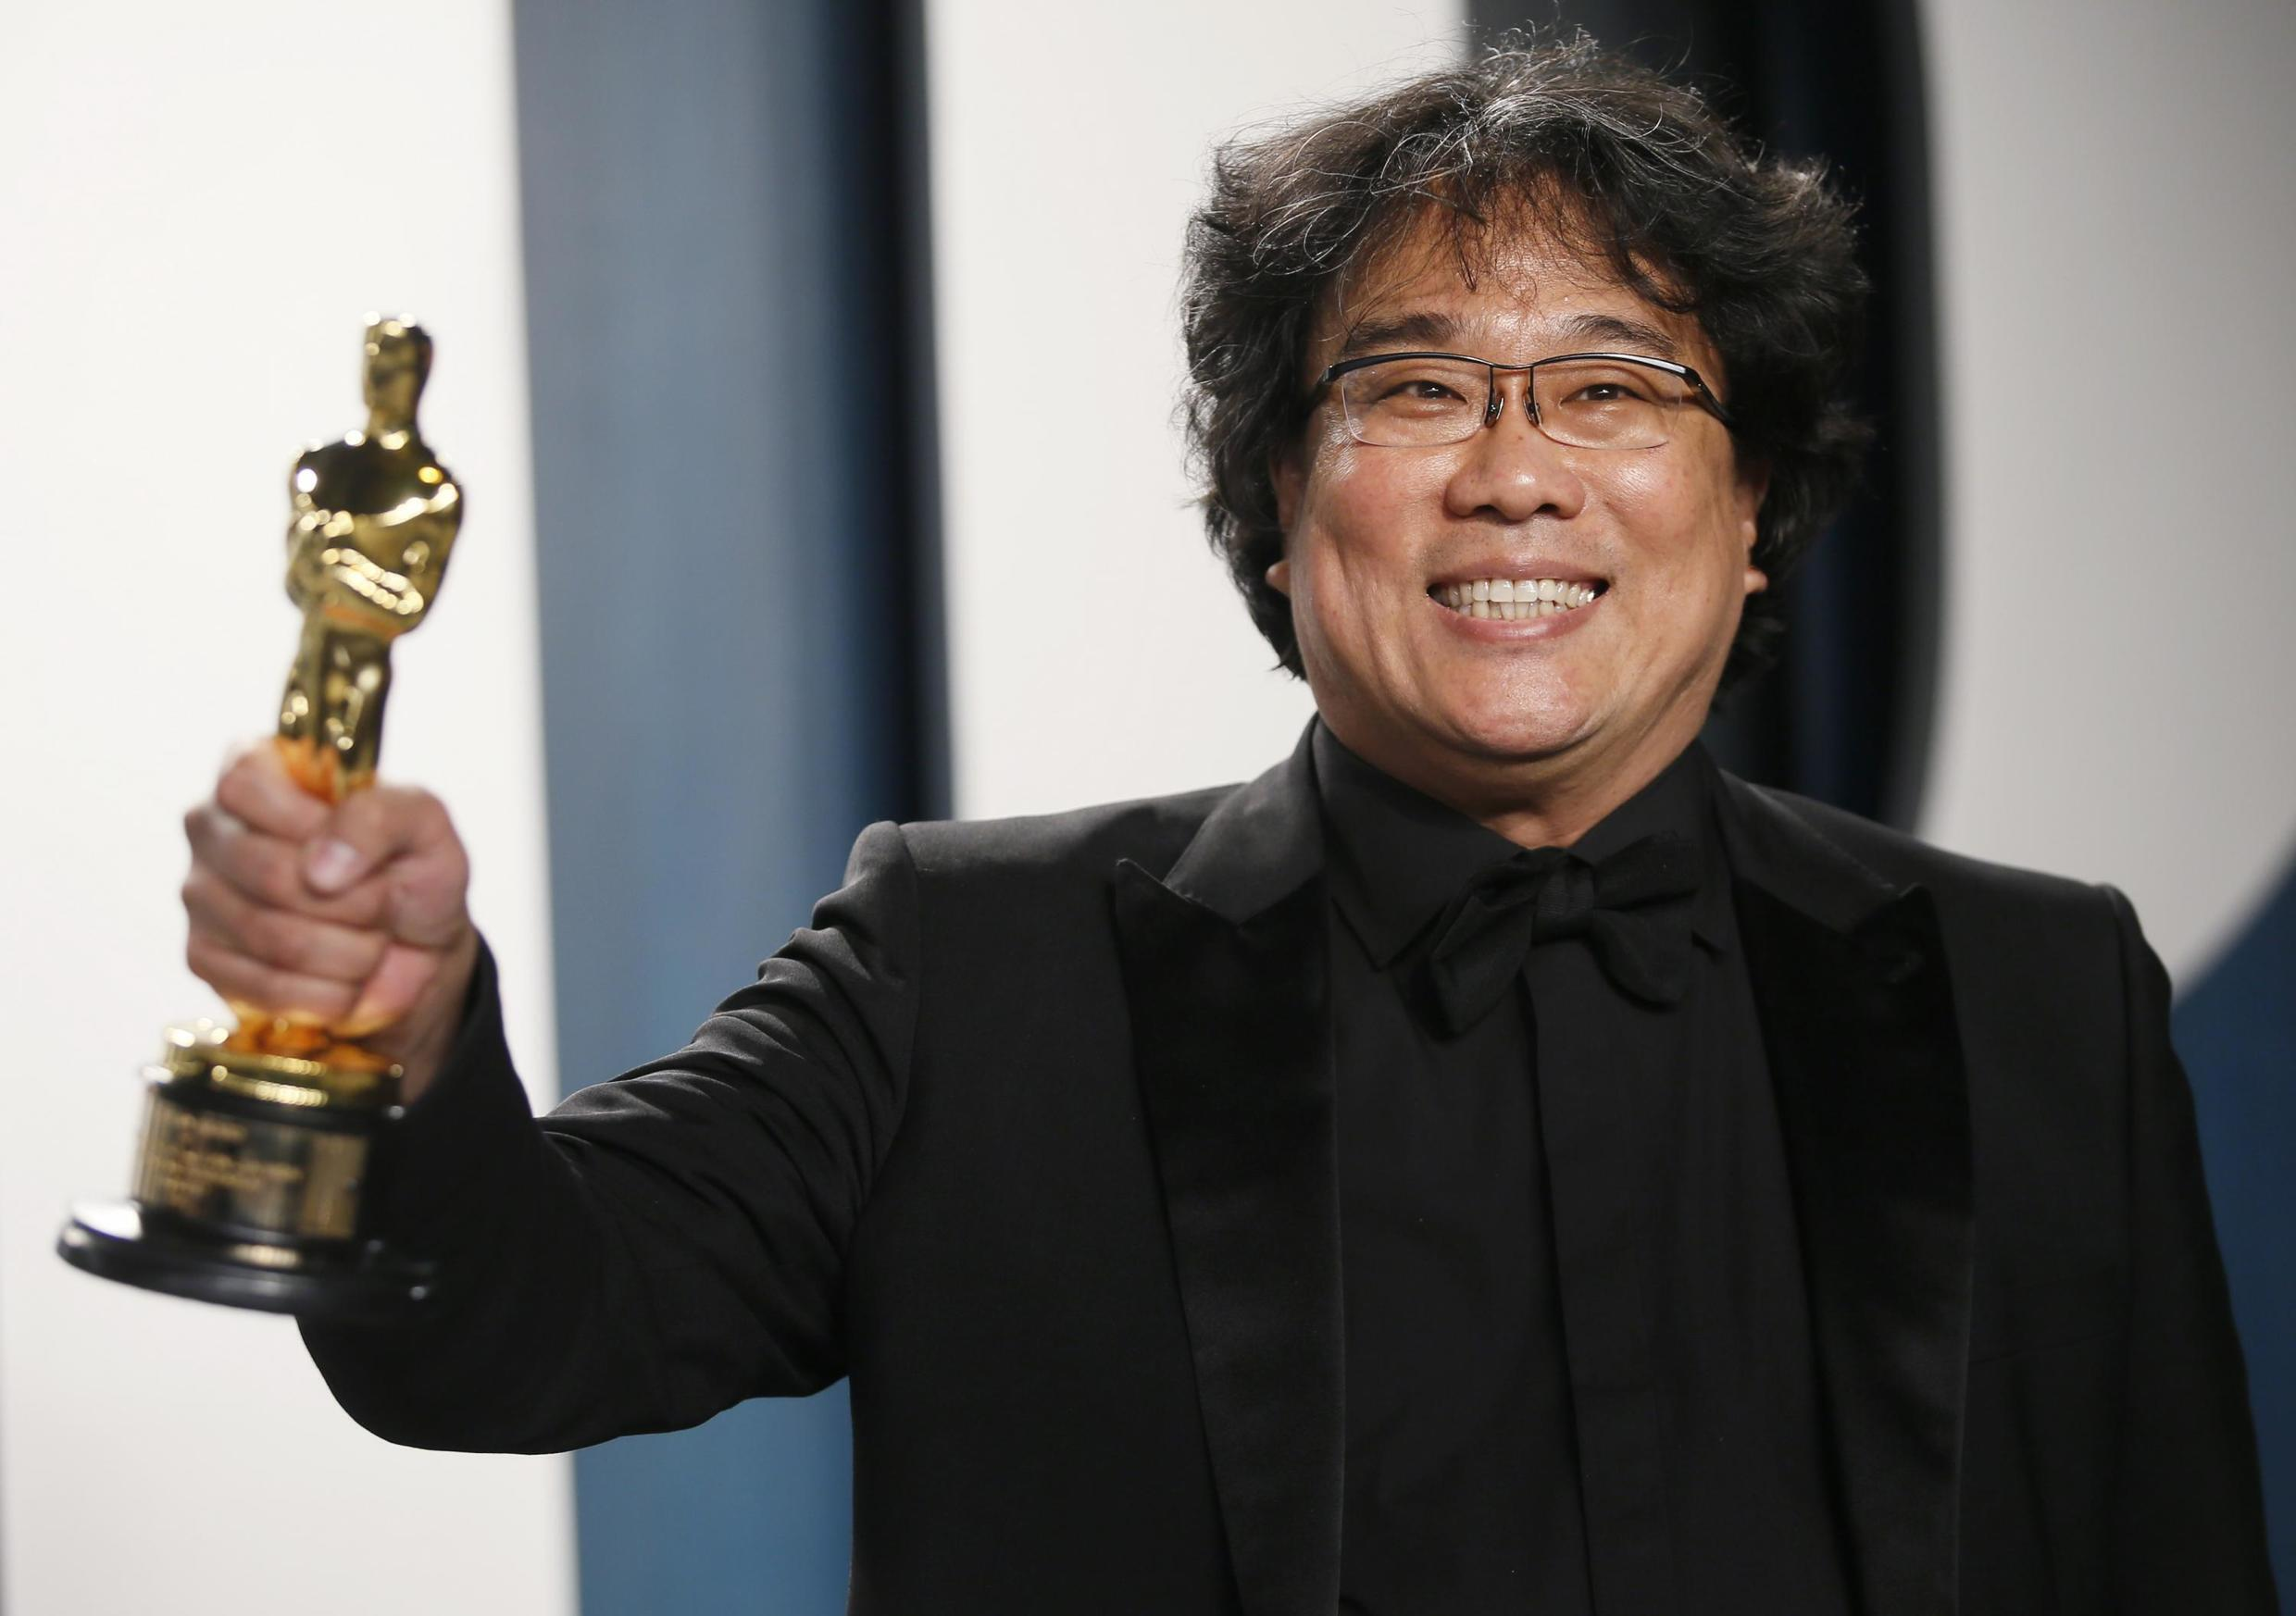 """Bong Joon Ho holds one of his Oscars for """"Parasite"""" at the Vanity Fair Oscar party in Beverly Hills during the 92nd Academy Awards, in Los Angeles, California, U.S., February 9, 2020."""